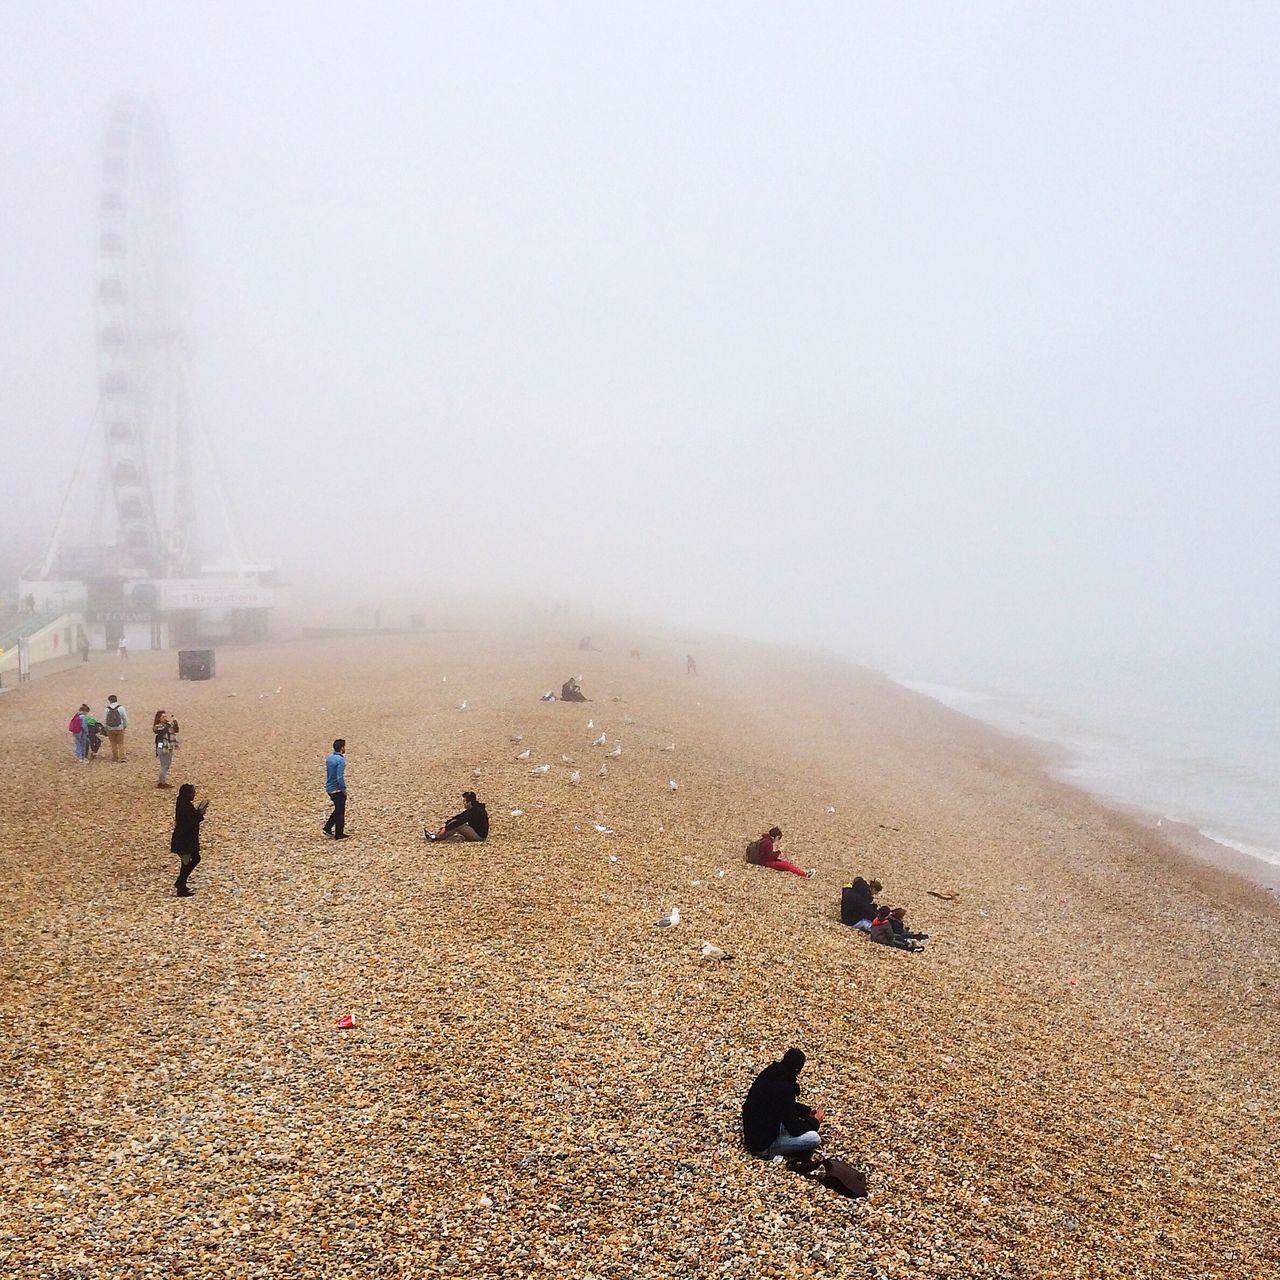 People On Rocky Beach On Foggy Day